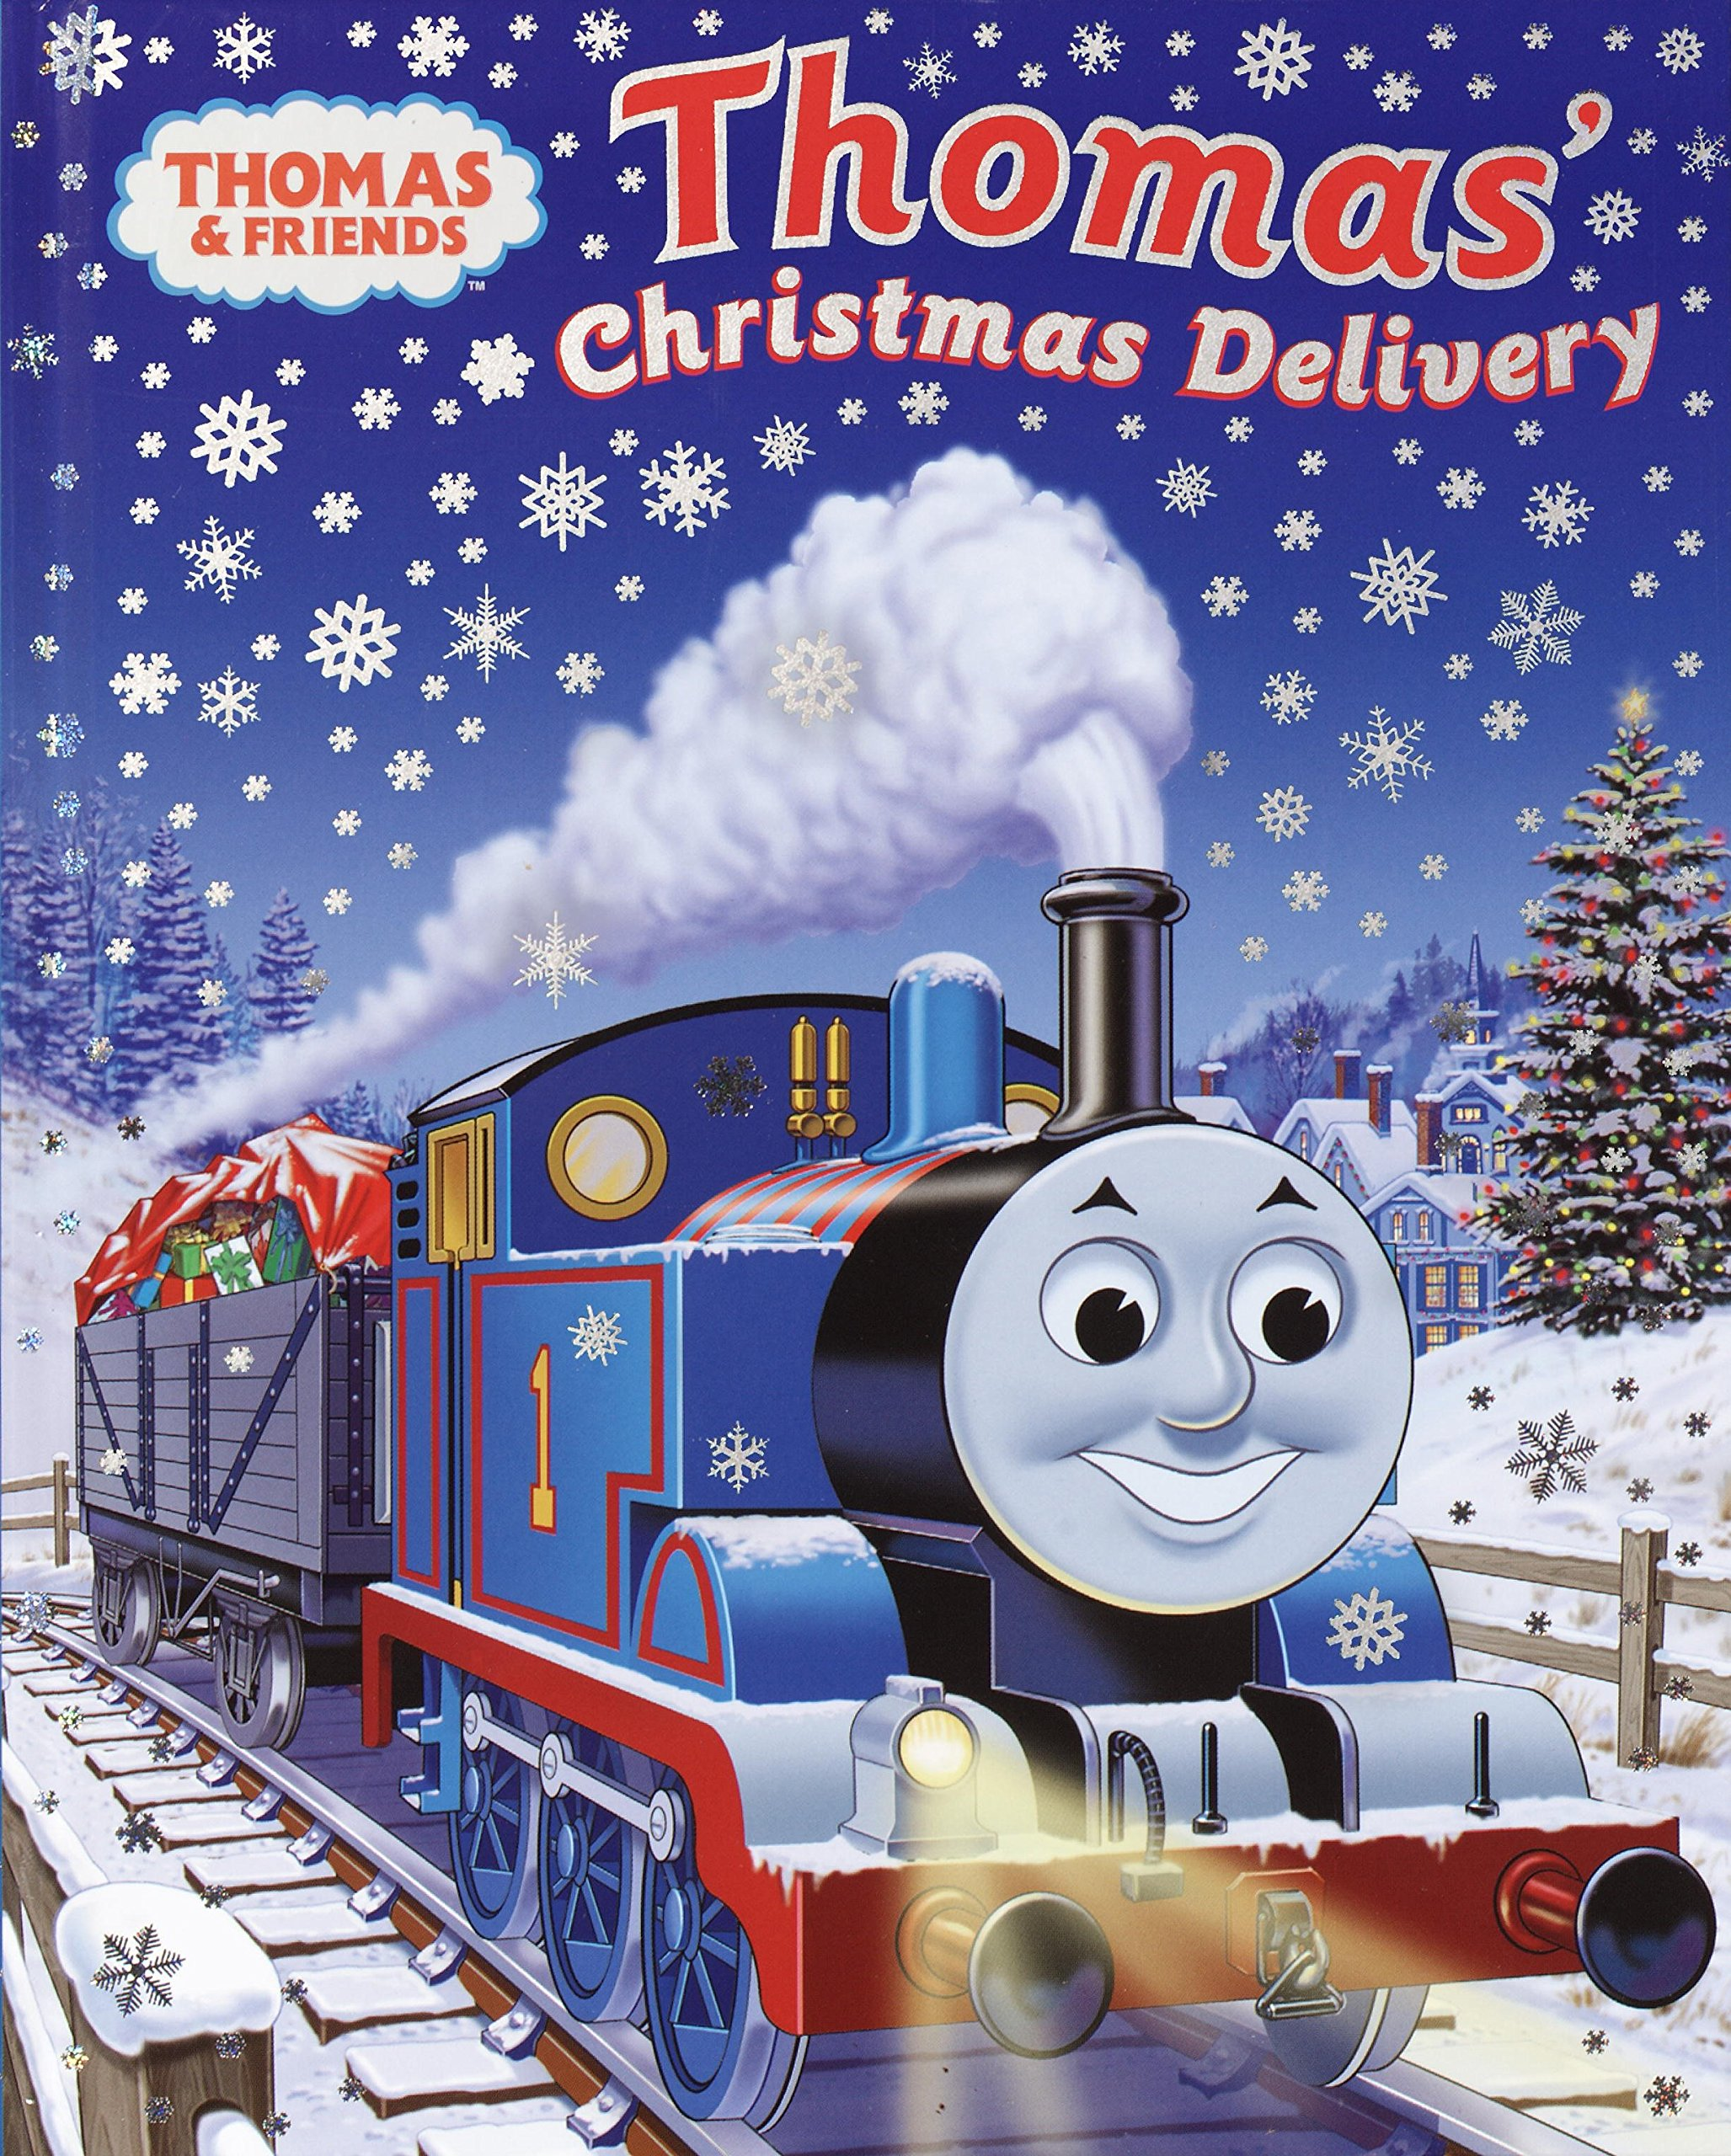 thomas christmas delivery thomas friends rev w awdry tommy stubbs 9780375828775 amazoncom books - Amazon Christmas Delivery